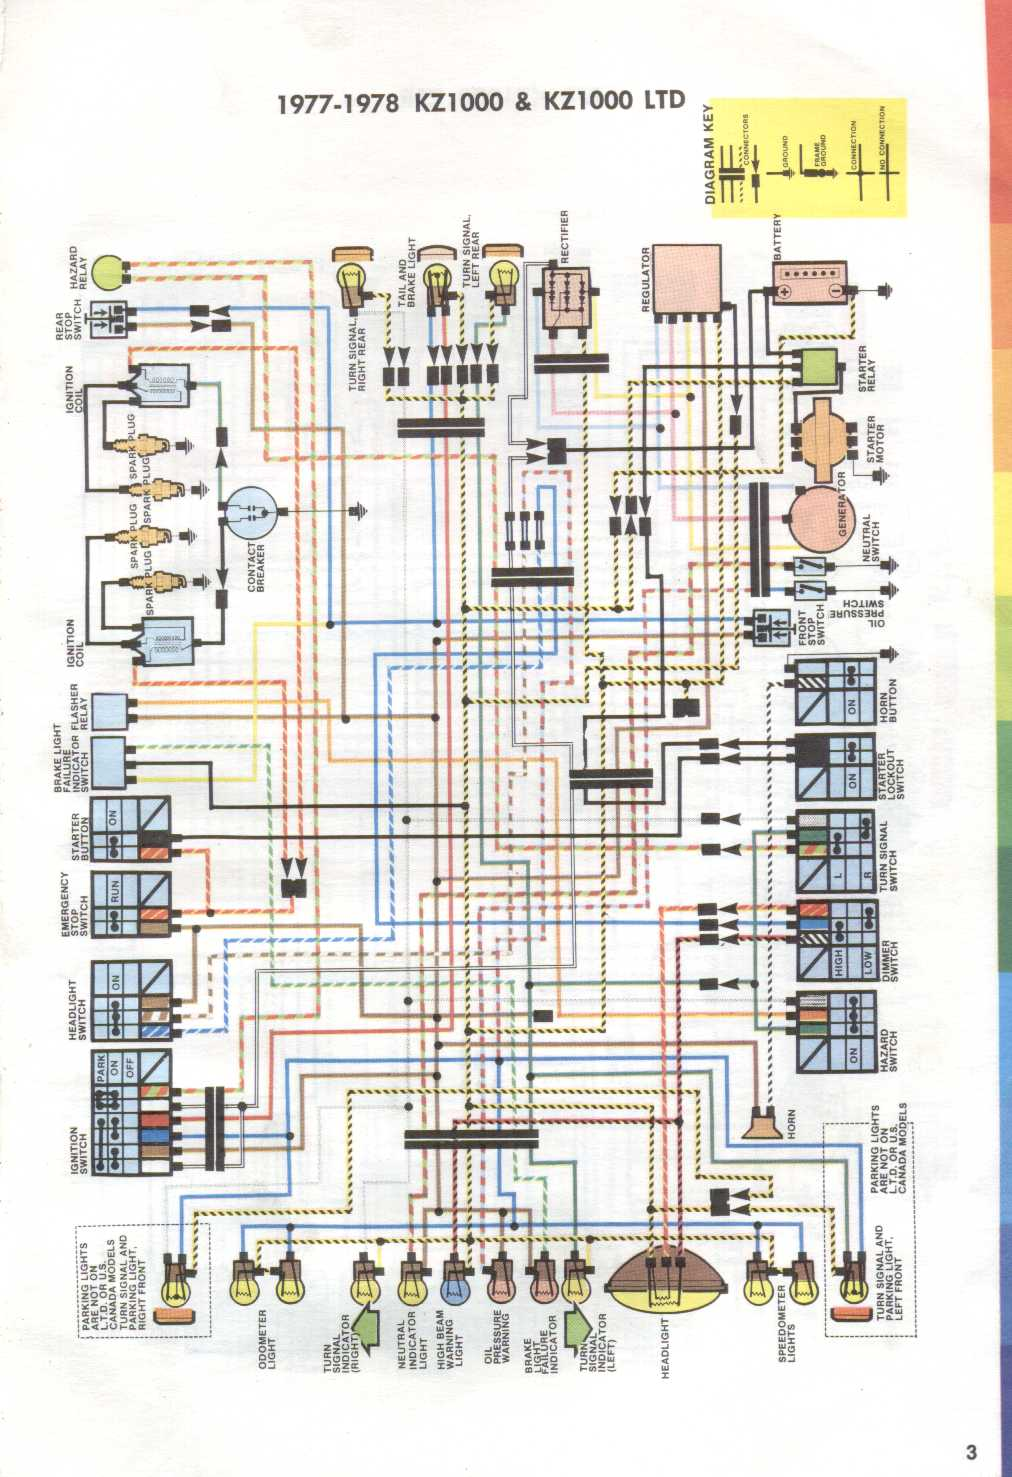 Kawasaki_KZ1000 LTD_Wiring_Diagram_1977 1978 wiring diagram for 1977 1978 kawasaki kz1000 and kz1000ltd kawasaki wiring diagram at bayanpartner.co